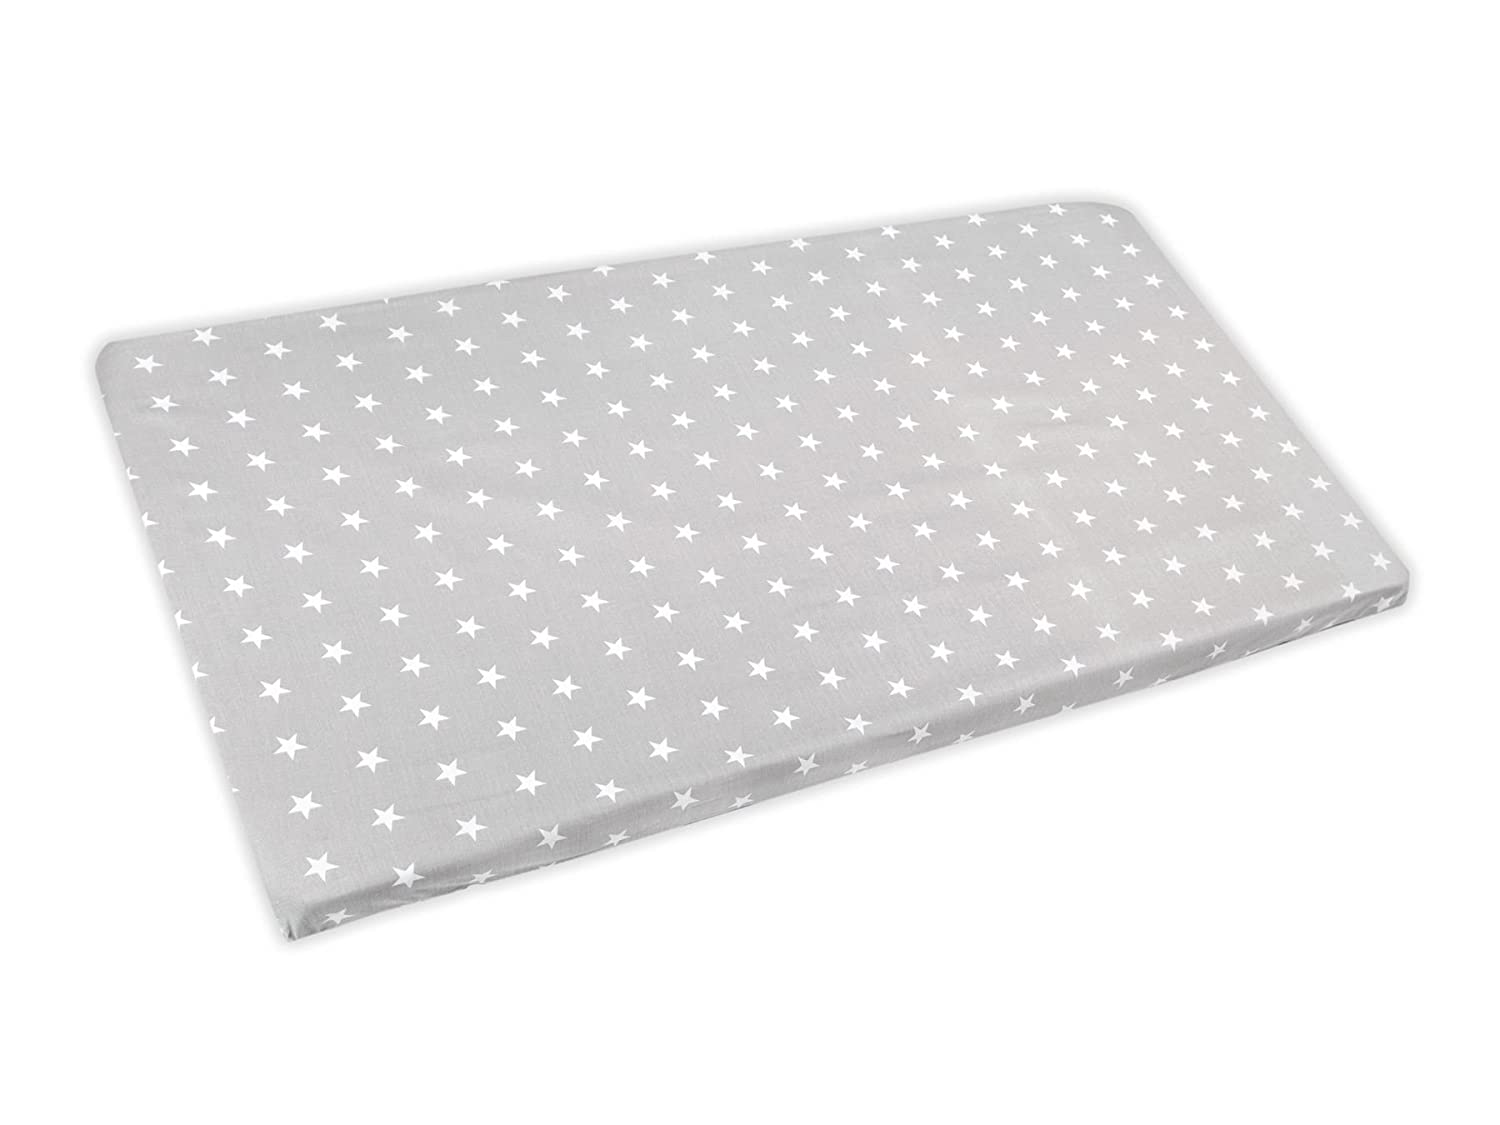 Baby Cot Cotton Fitted Sheet 120x60 cm, Fits Cot - Pattern 21 Baby Comfort